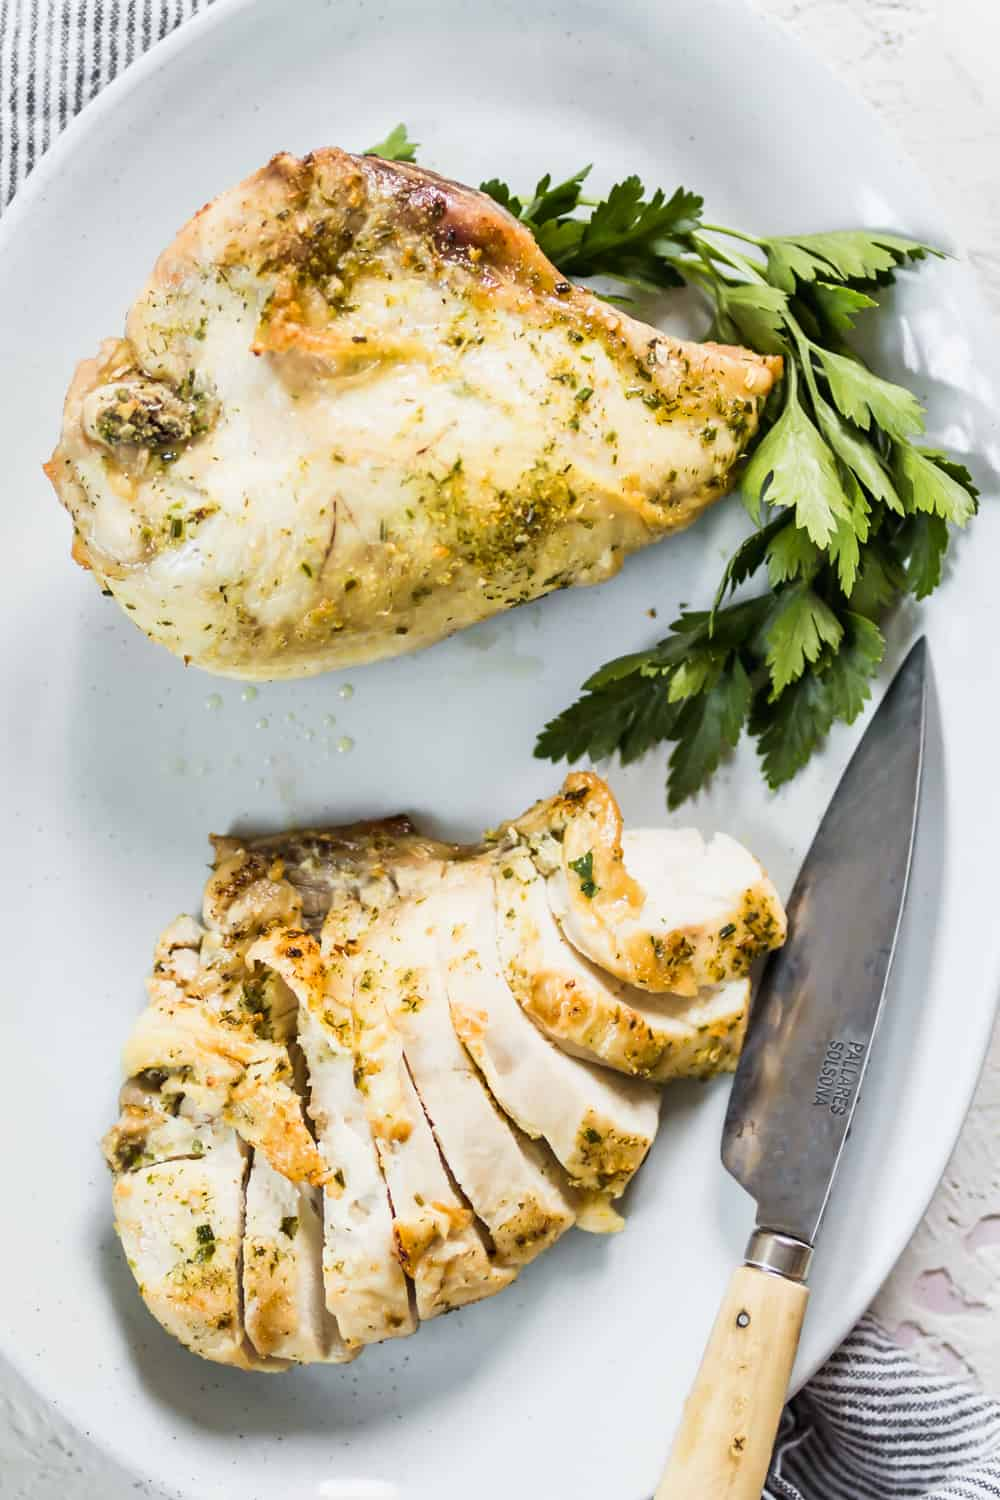 Everyday Baked Chicken Breast sliced and served on a white plate with fresh greens